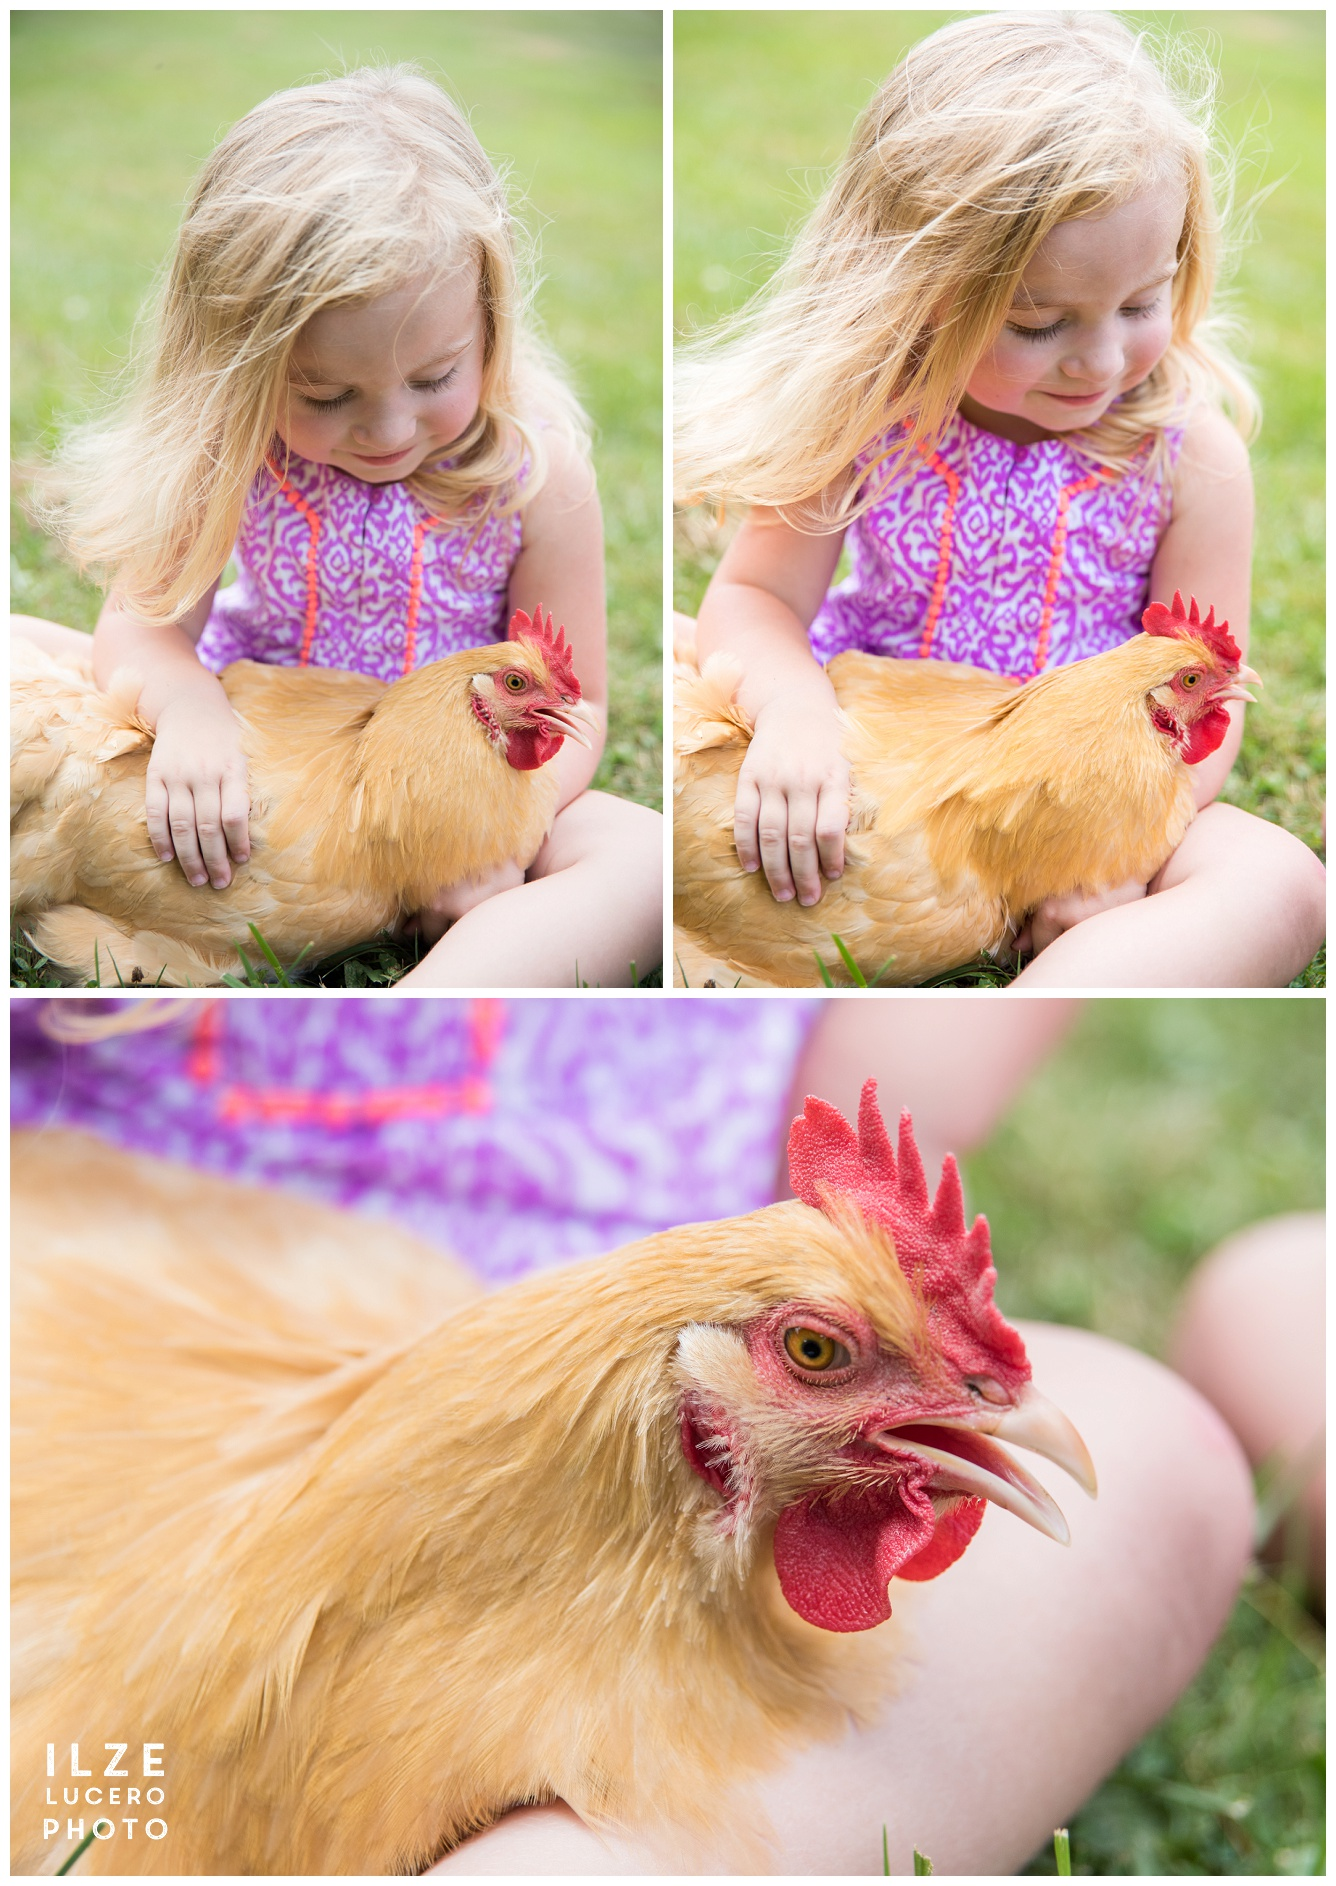 Girl and hen beautiful photo inspiration